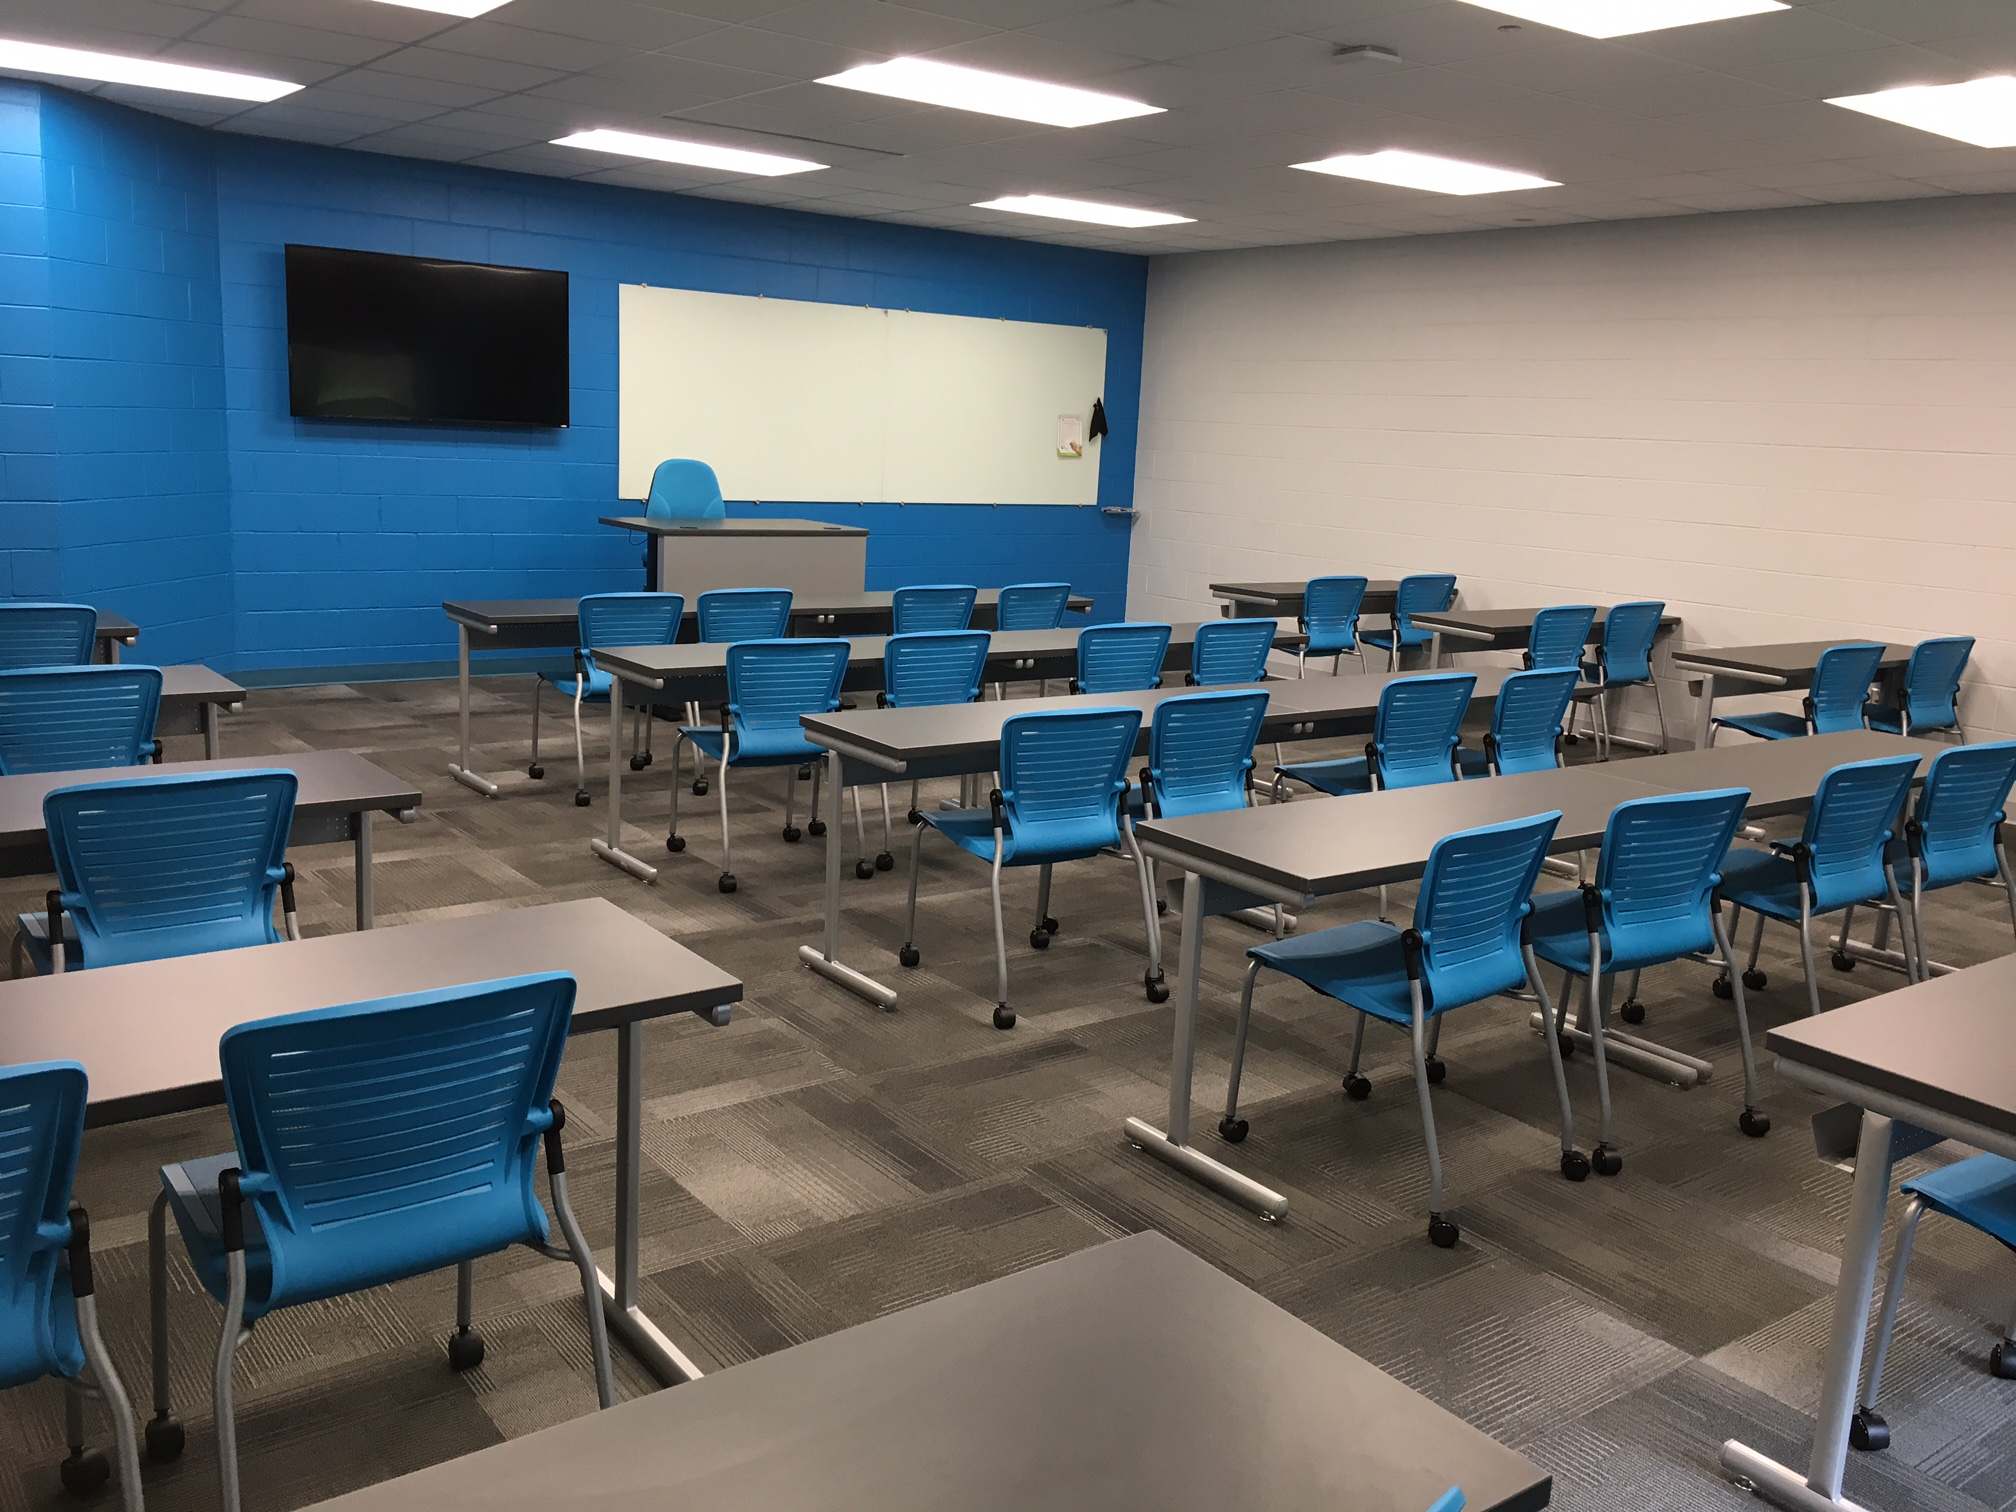 Jacksonville State University - Active Learning Table Install Pic 2.JPG